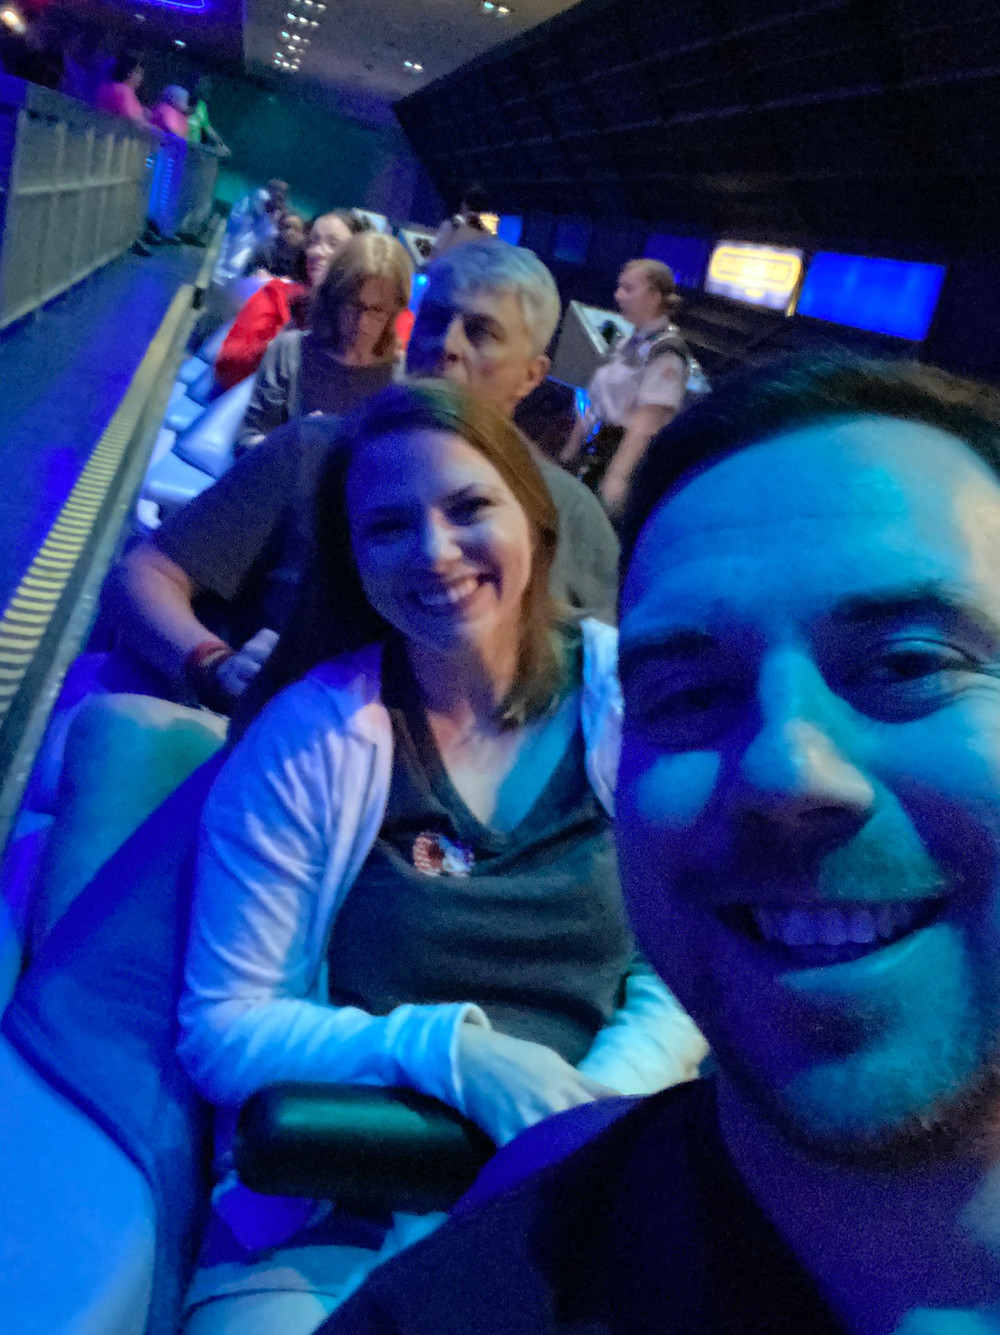 People in the ride vehicles for Space Mountain in Tomorrowland